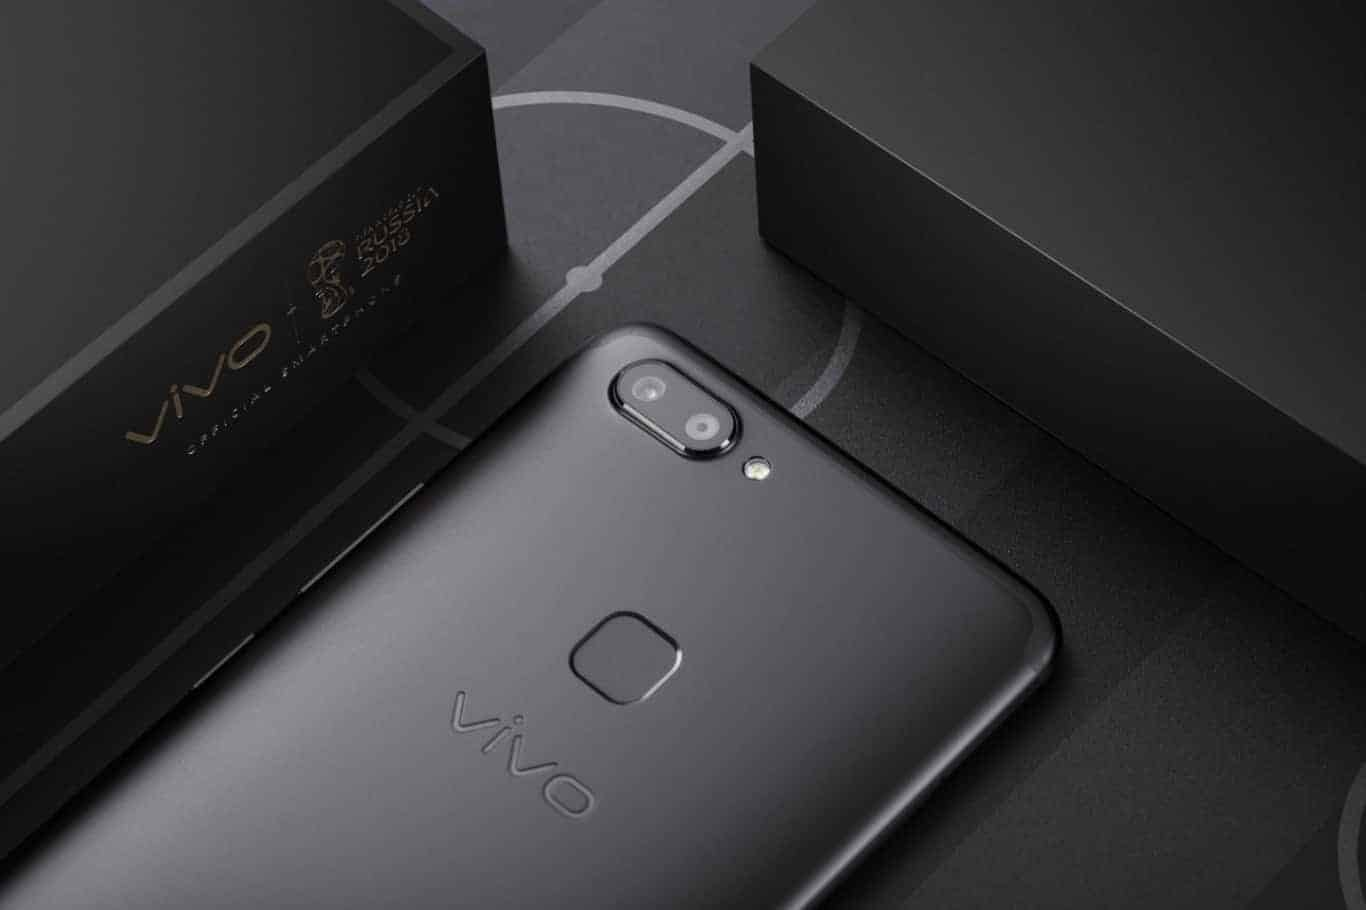 Special Edition Vivo X20 for FIFA World Cup 2018 9